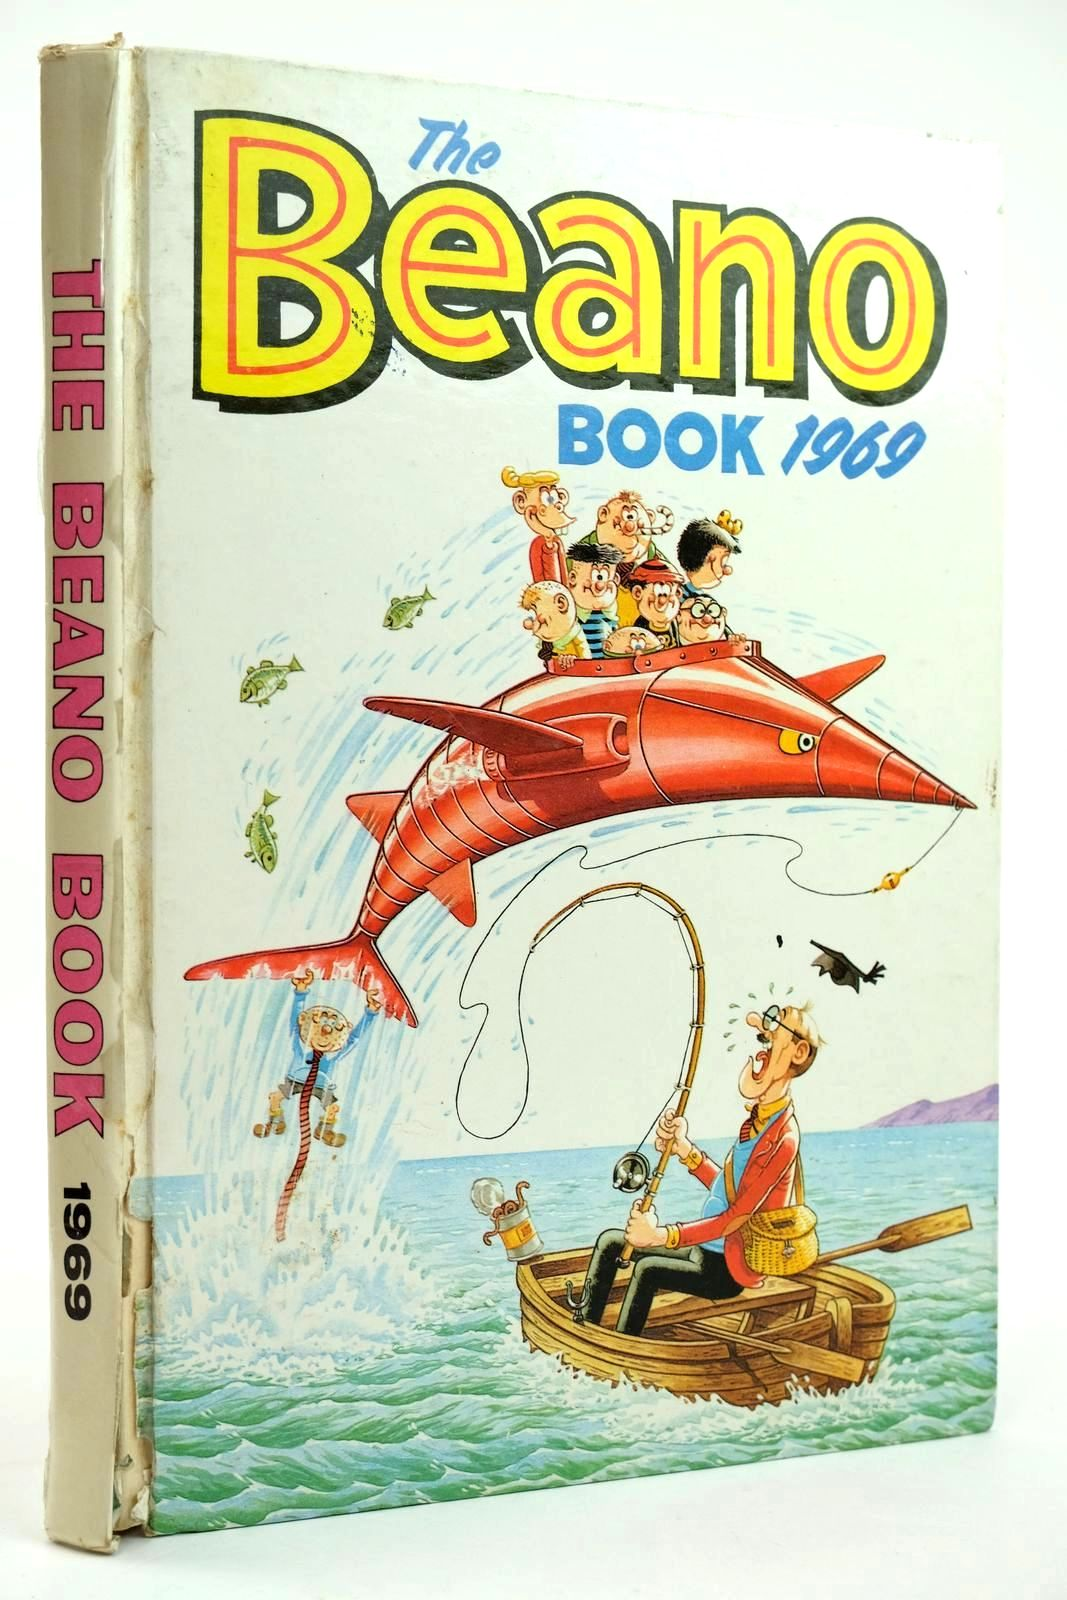 Photo of THE BEANO BOOK 1969 published by D.C. Thomson & Co Ltd. (STOCK CODE: 2131960)  for sale by Stella & Rose's Books